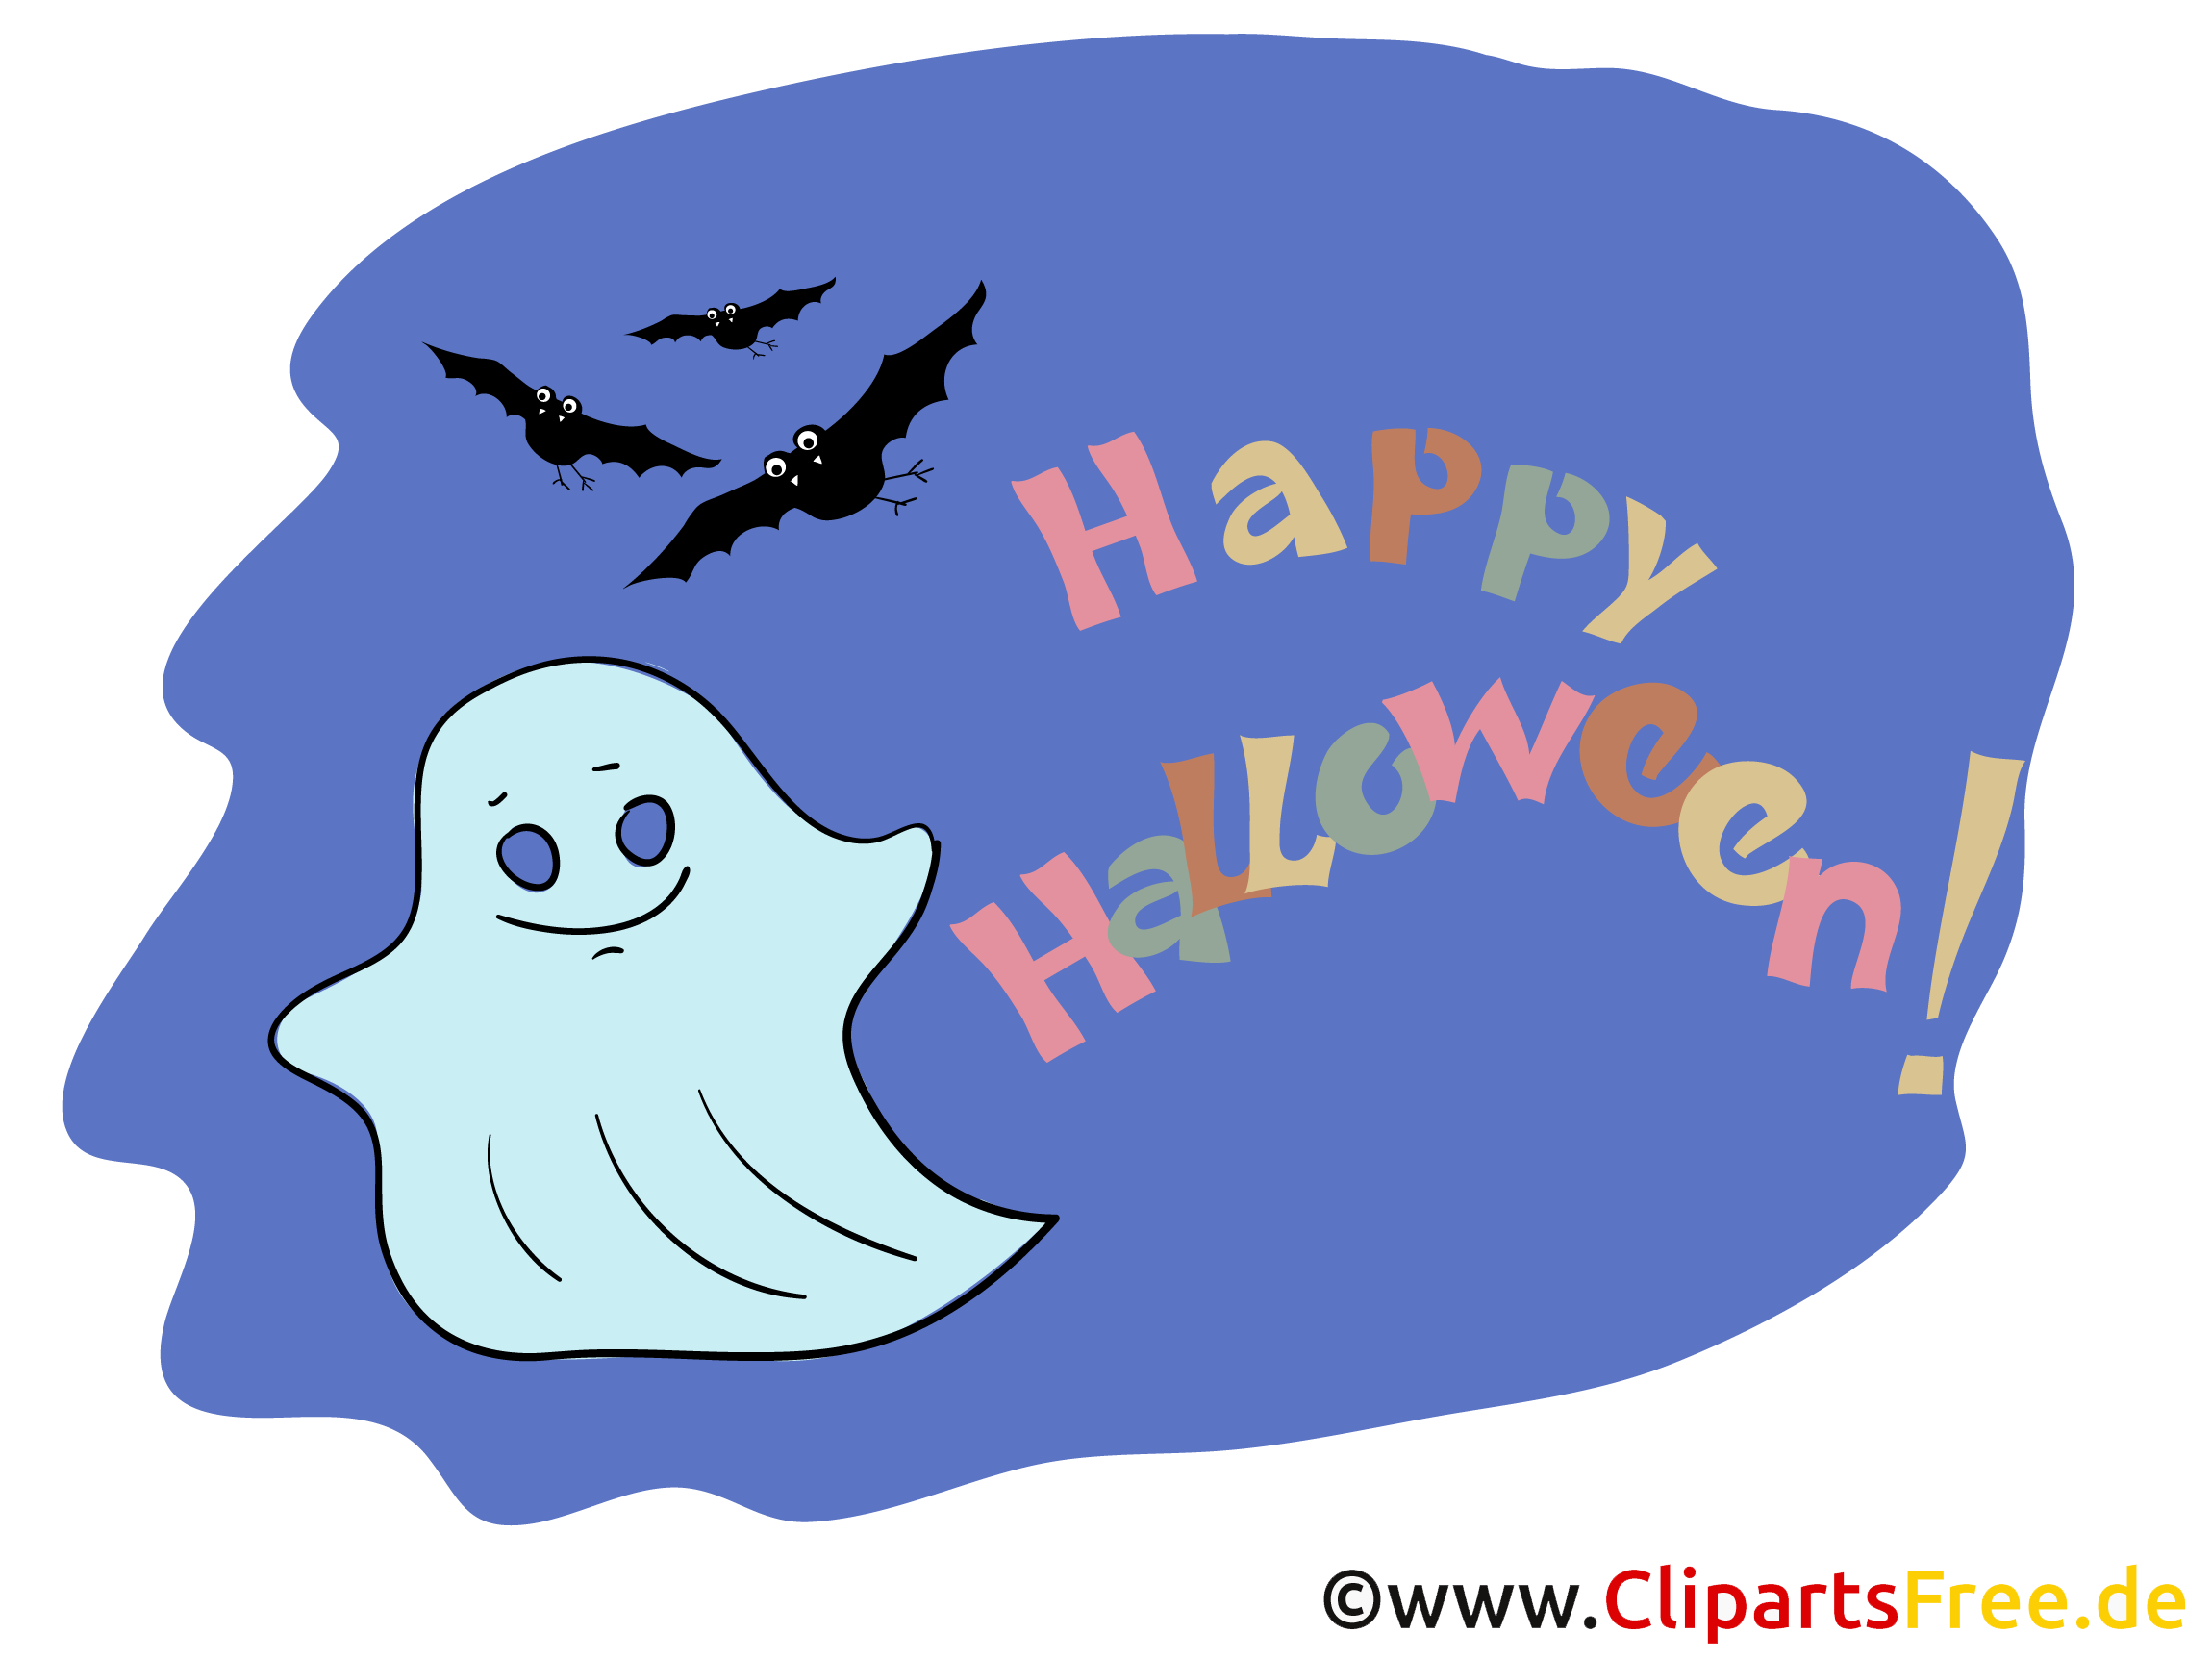 Gespenst Clipart zu Halloween